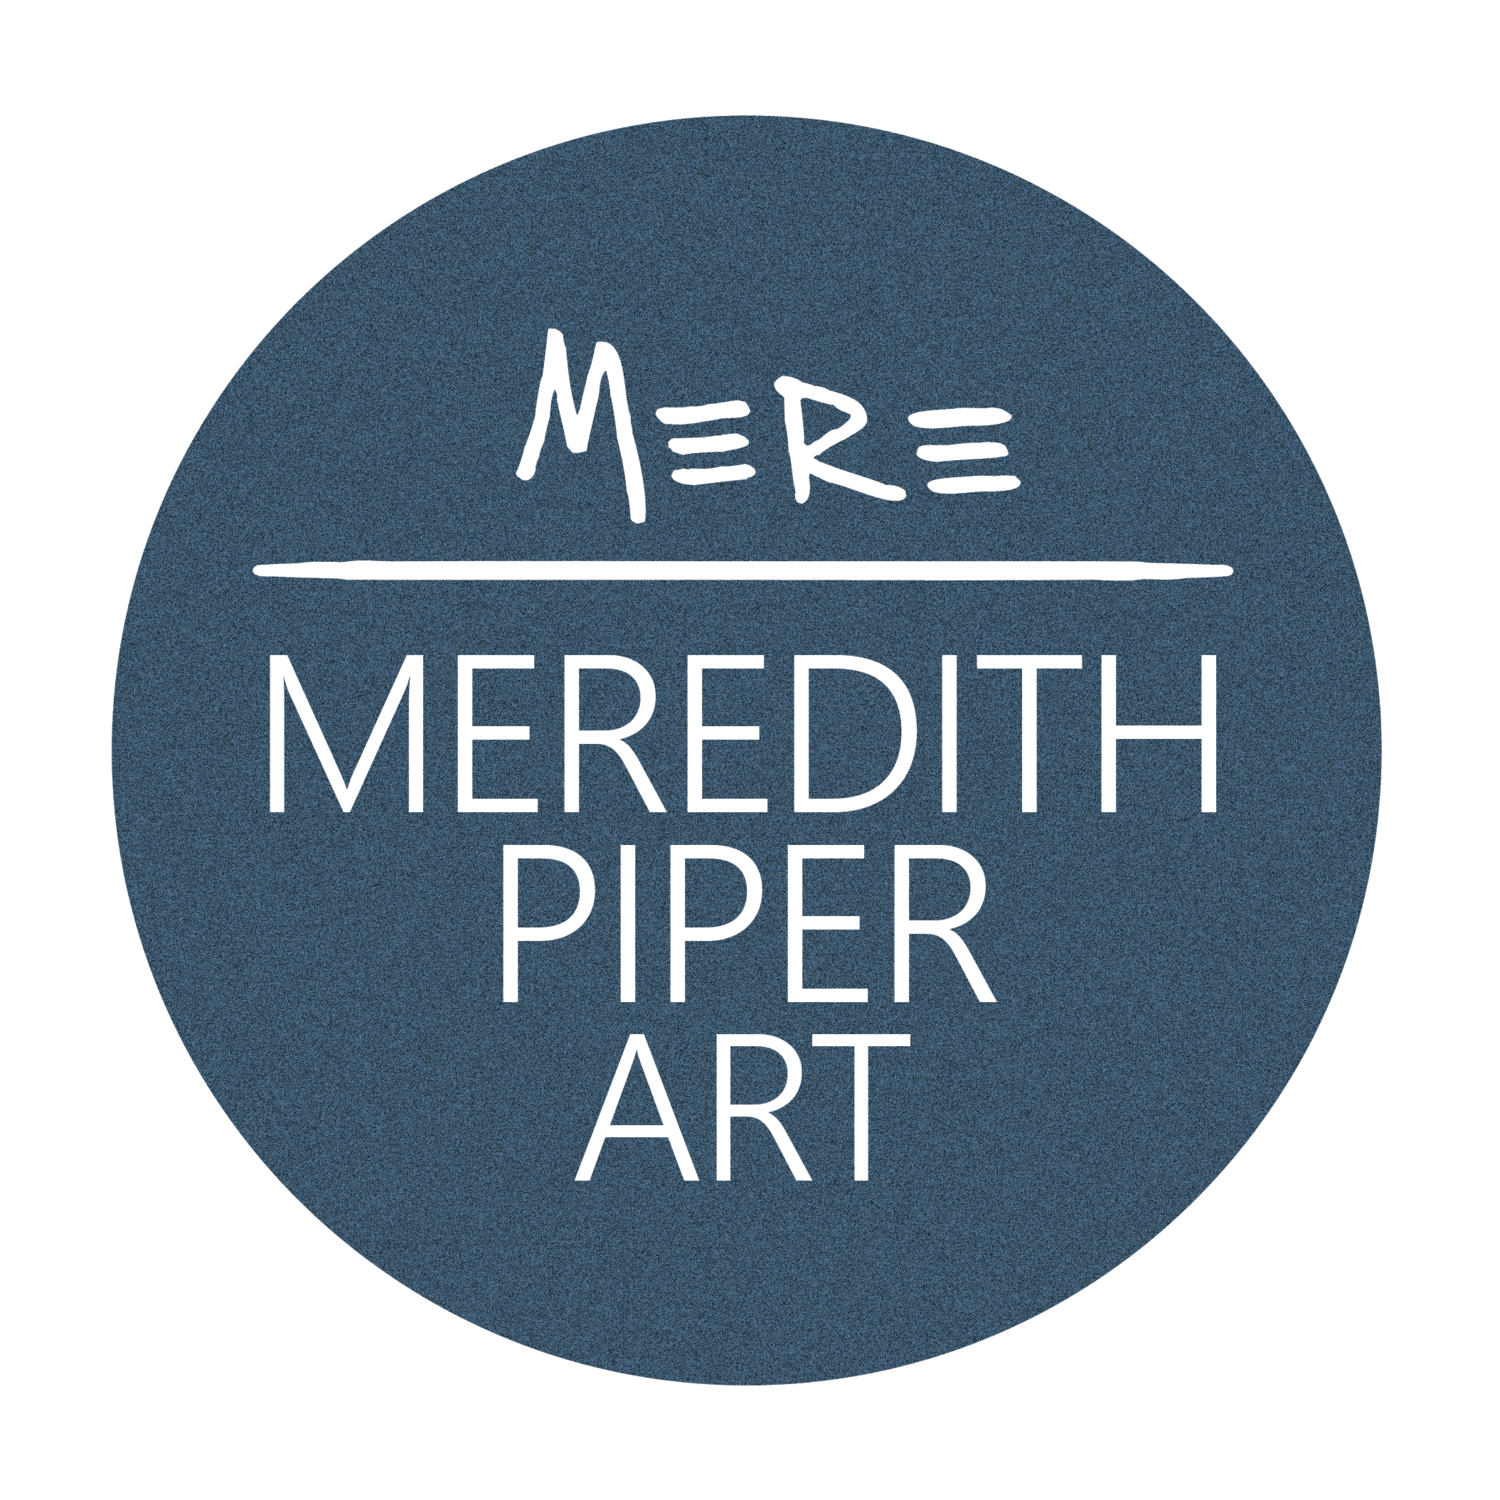 Meredith Piper Art